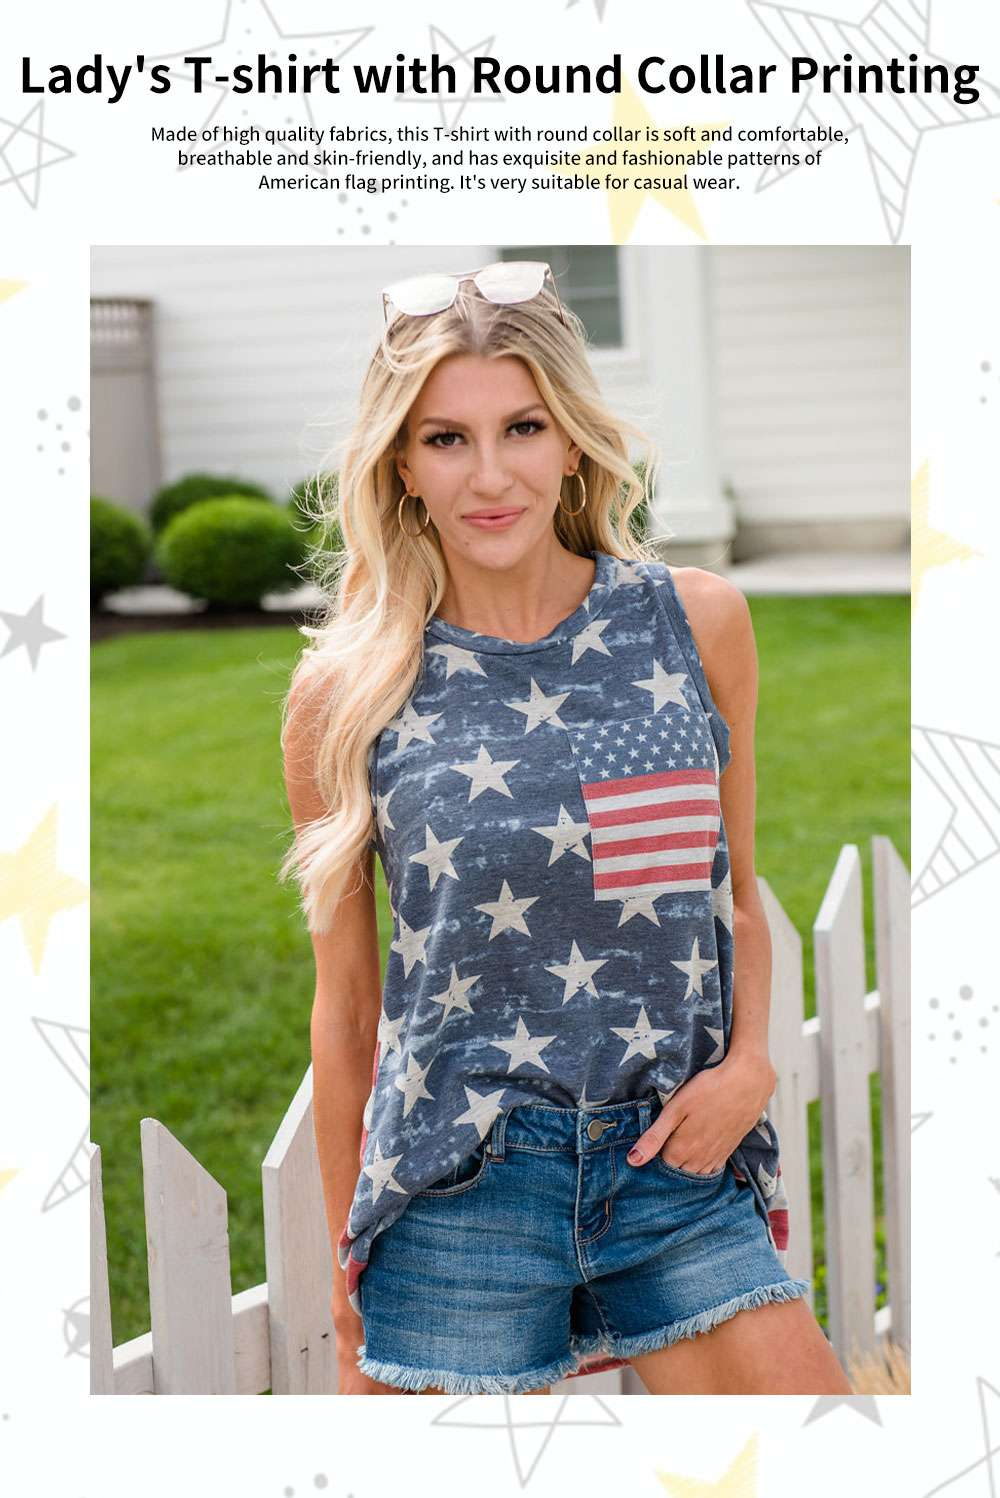 Lady's T-shirt with Round Collar Printing Sleeveless American Independence Day Printing T Shirt 0